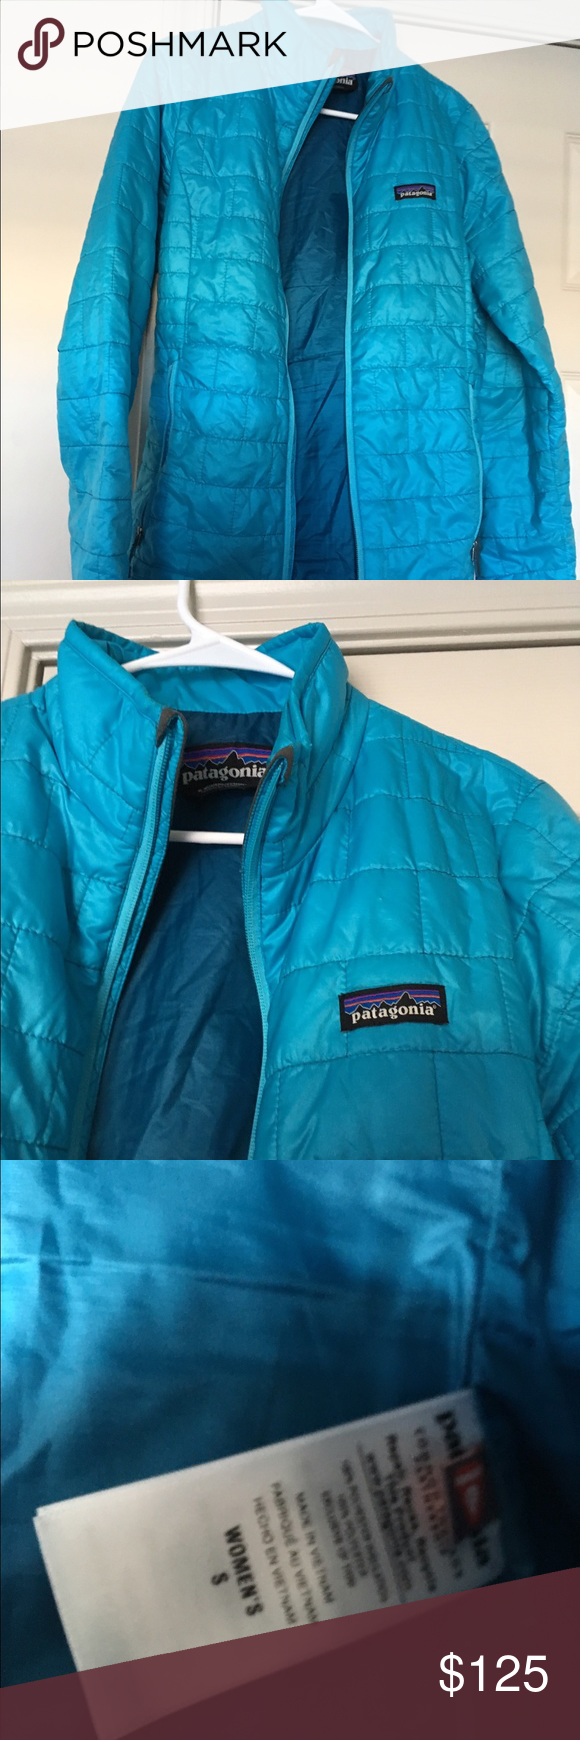 Patagonia nano puff quilted down jacket small Worn very little by a non smoker, just not enough cold weather here in Phoenix to justify keeping it. No stains rips etc. size small Patagonia Jackets & Coats Puffers